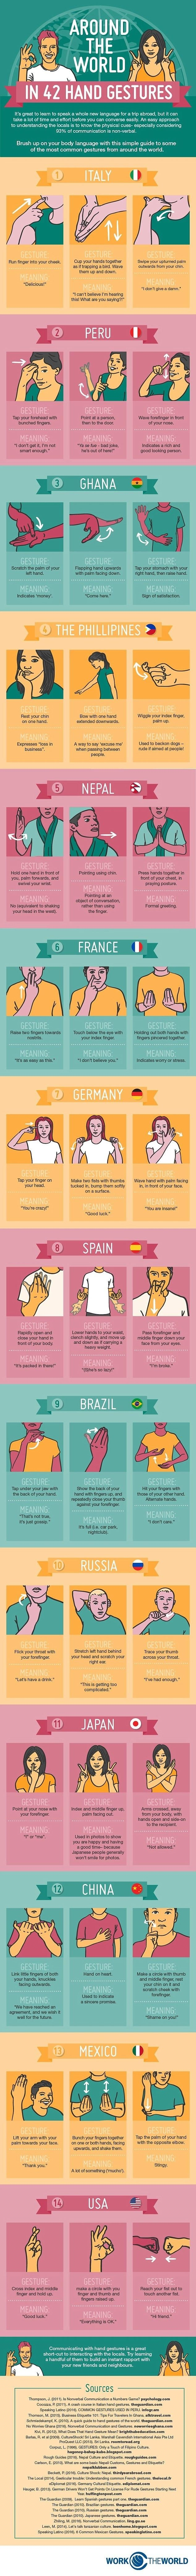 42 Hand Gestures Every Traveller Should Know If You Can't Speak The Local Language